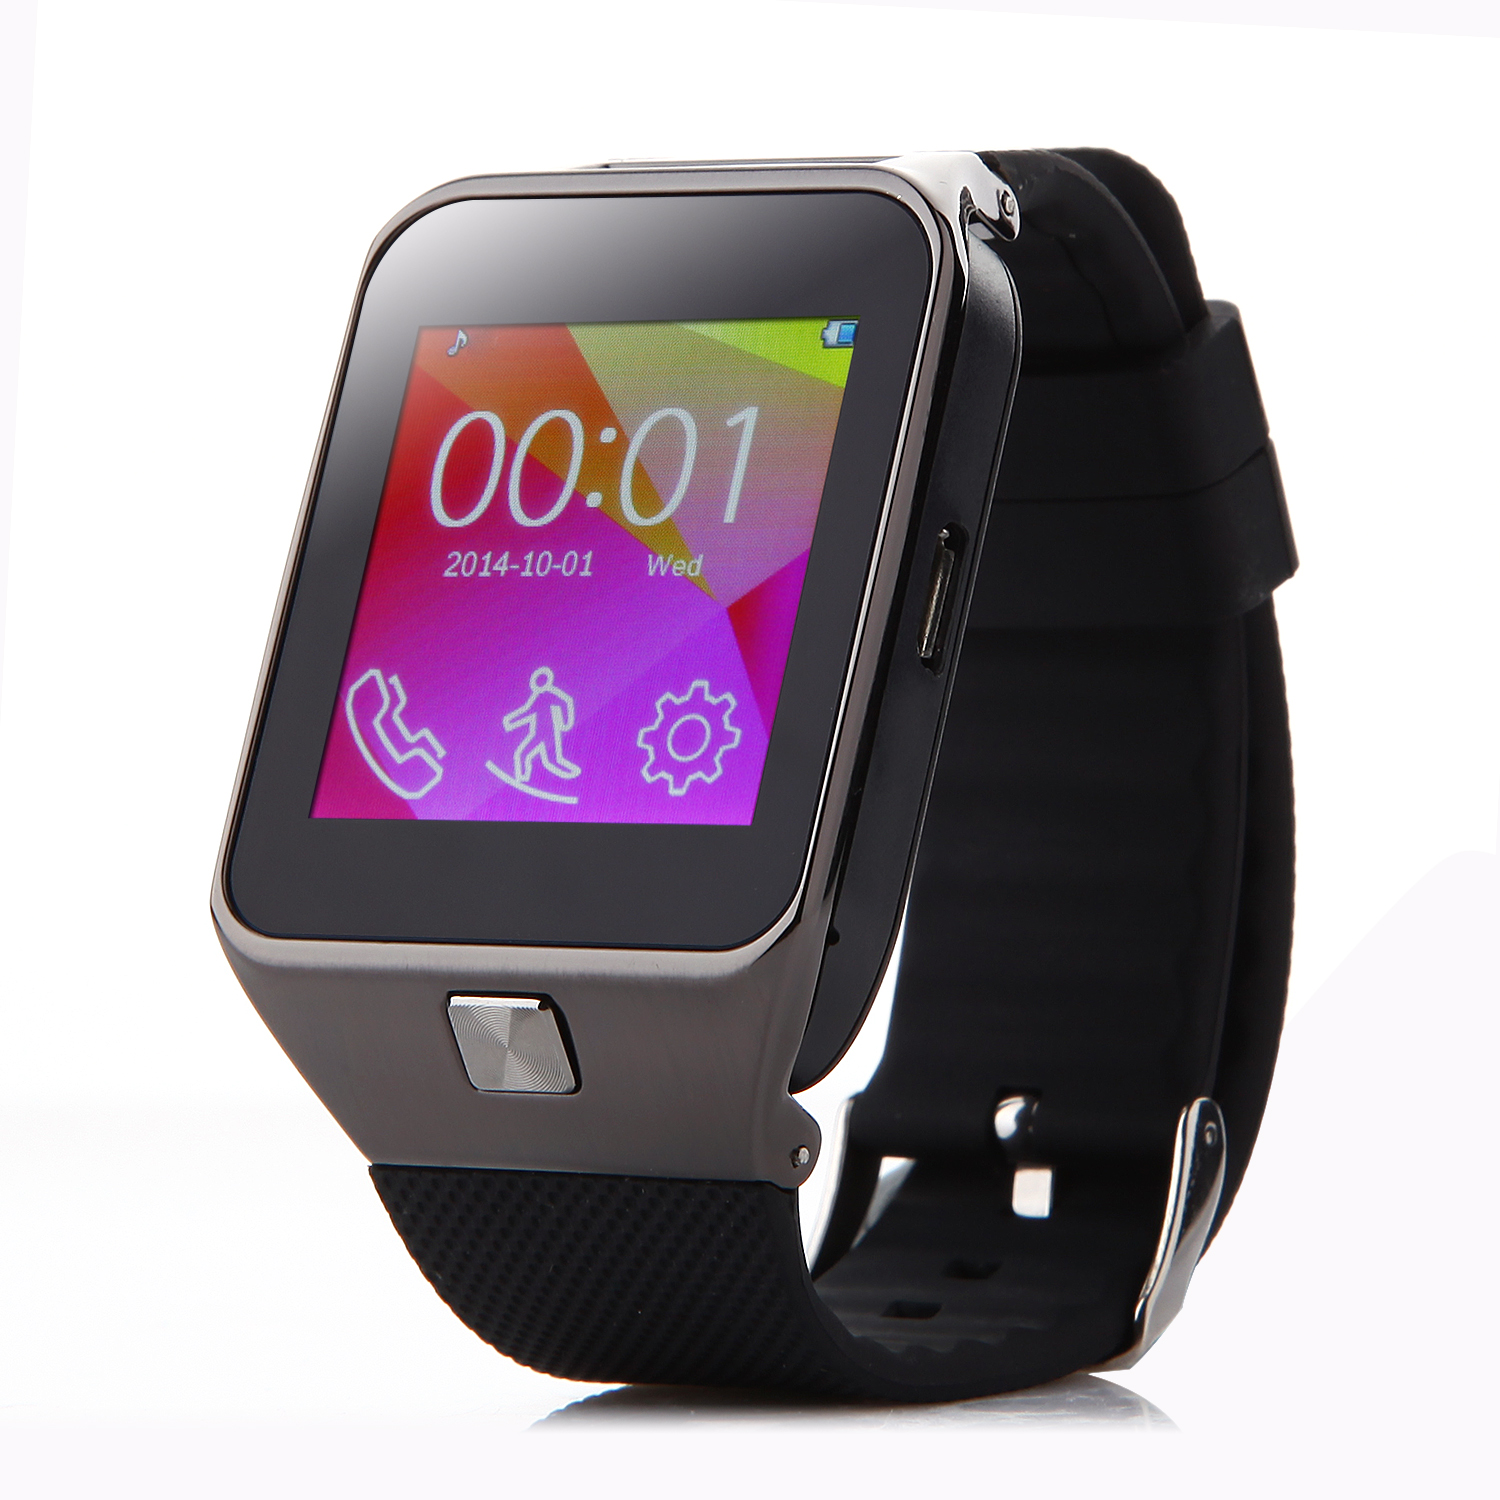 ZGPAX S29 Watch Phone Bluetooth Watch Quad Band 1.54 Inch FM Camera Black